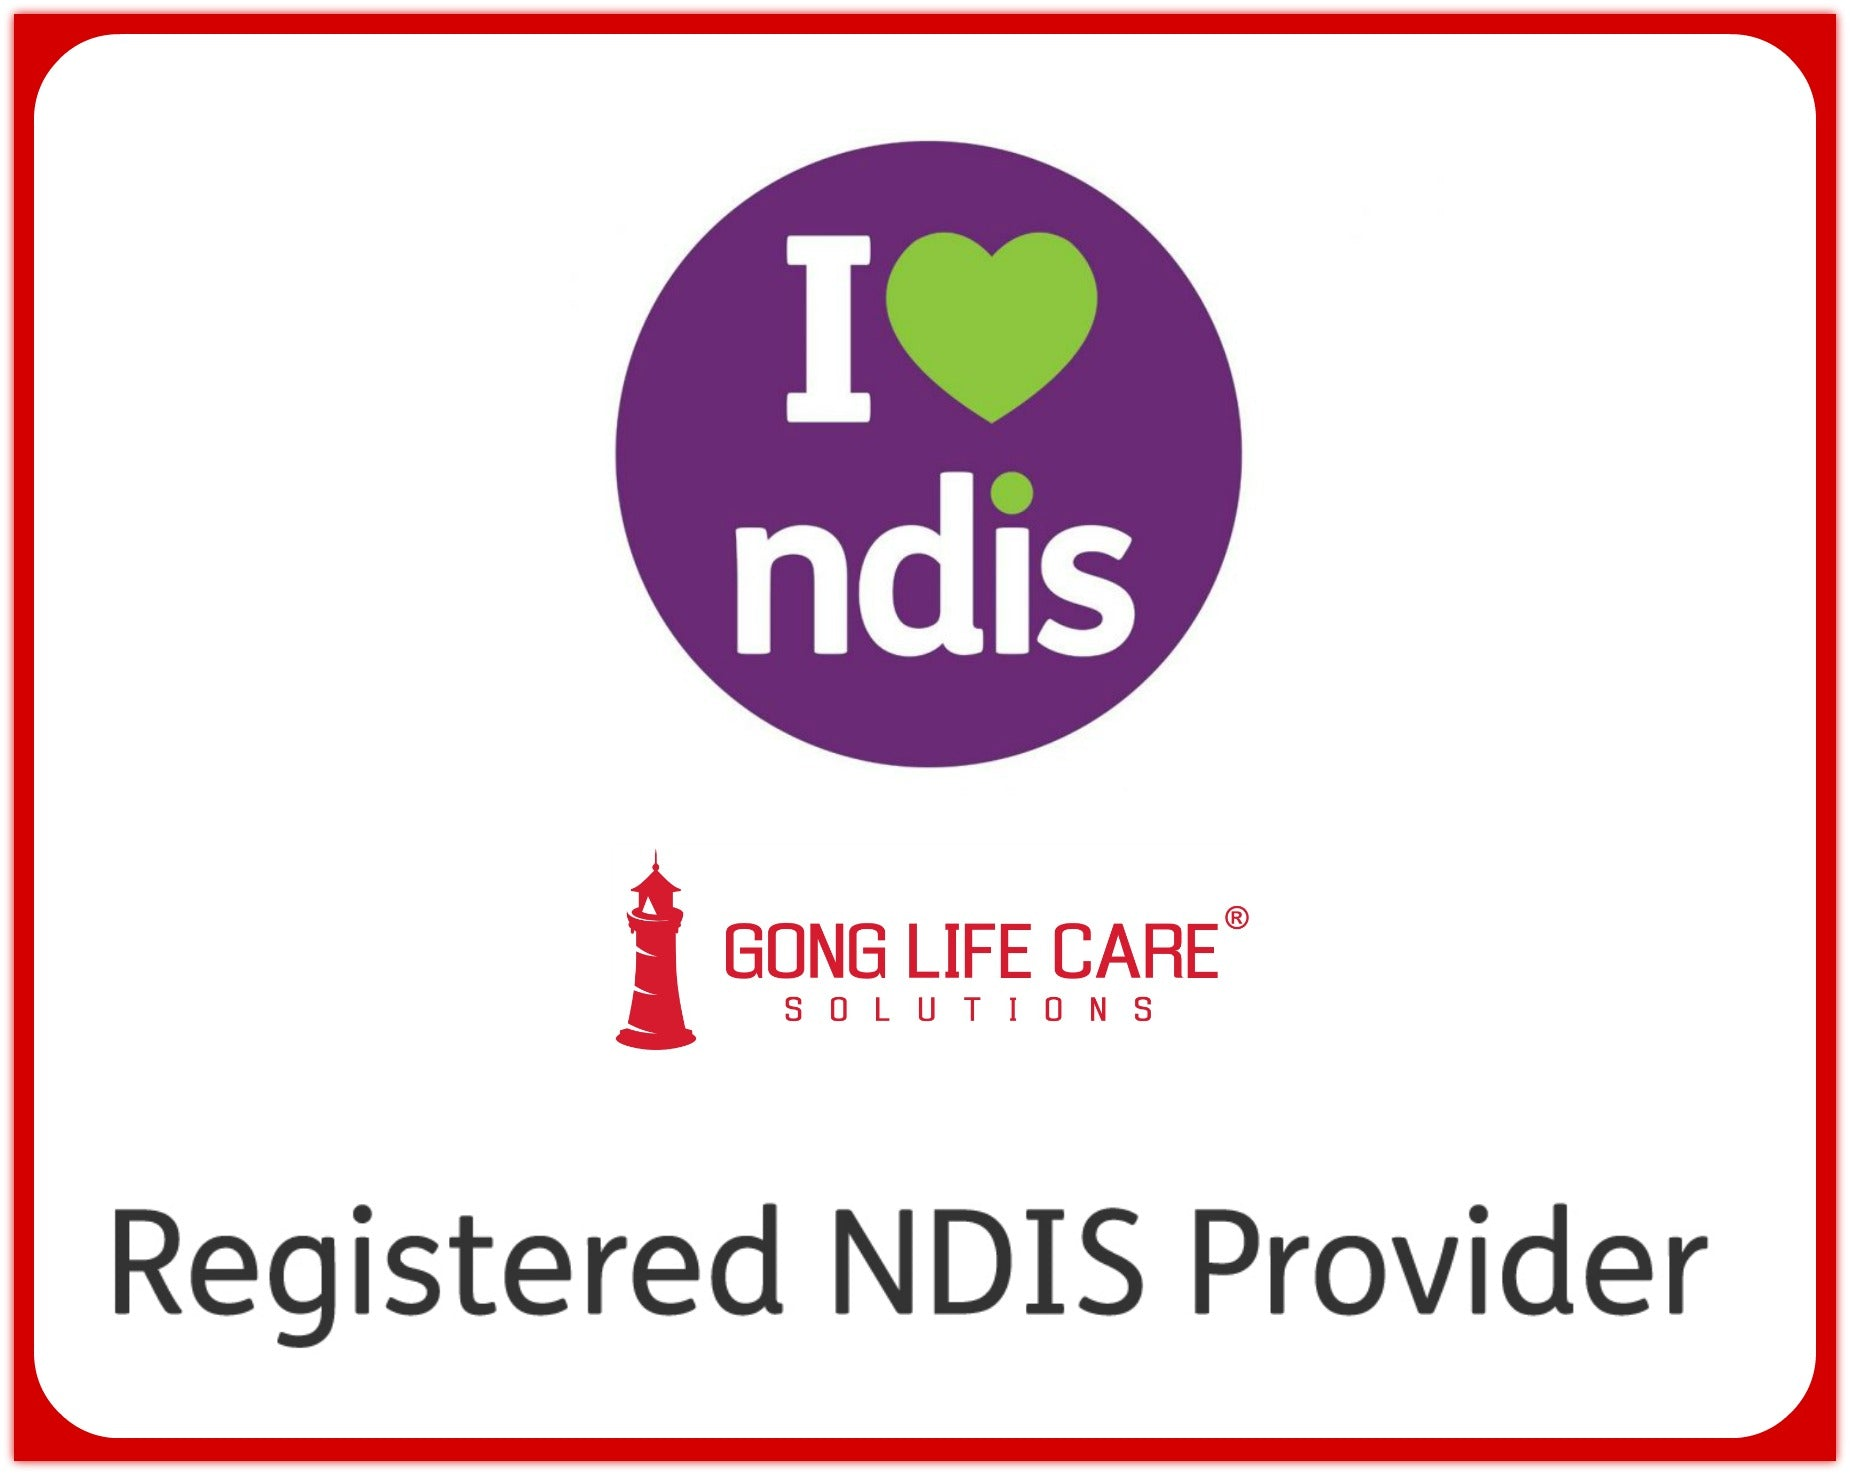 Gong Life Care Solutions NDIS Provider